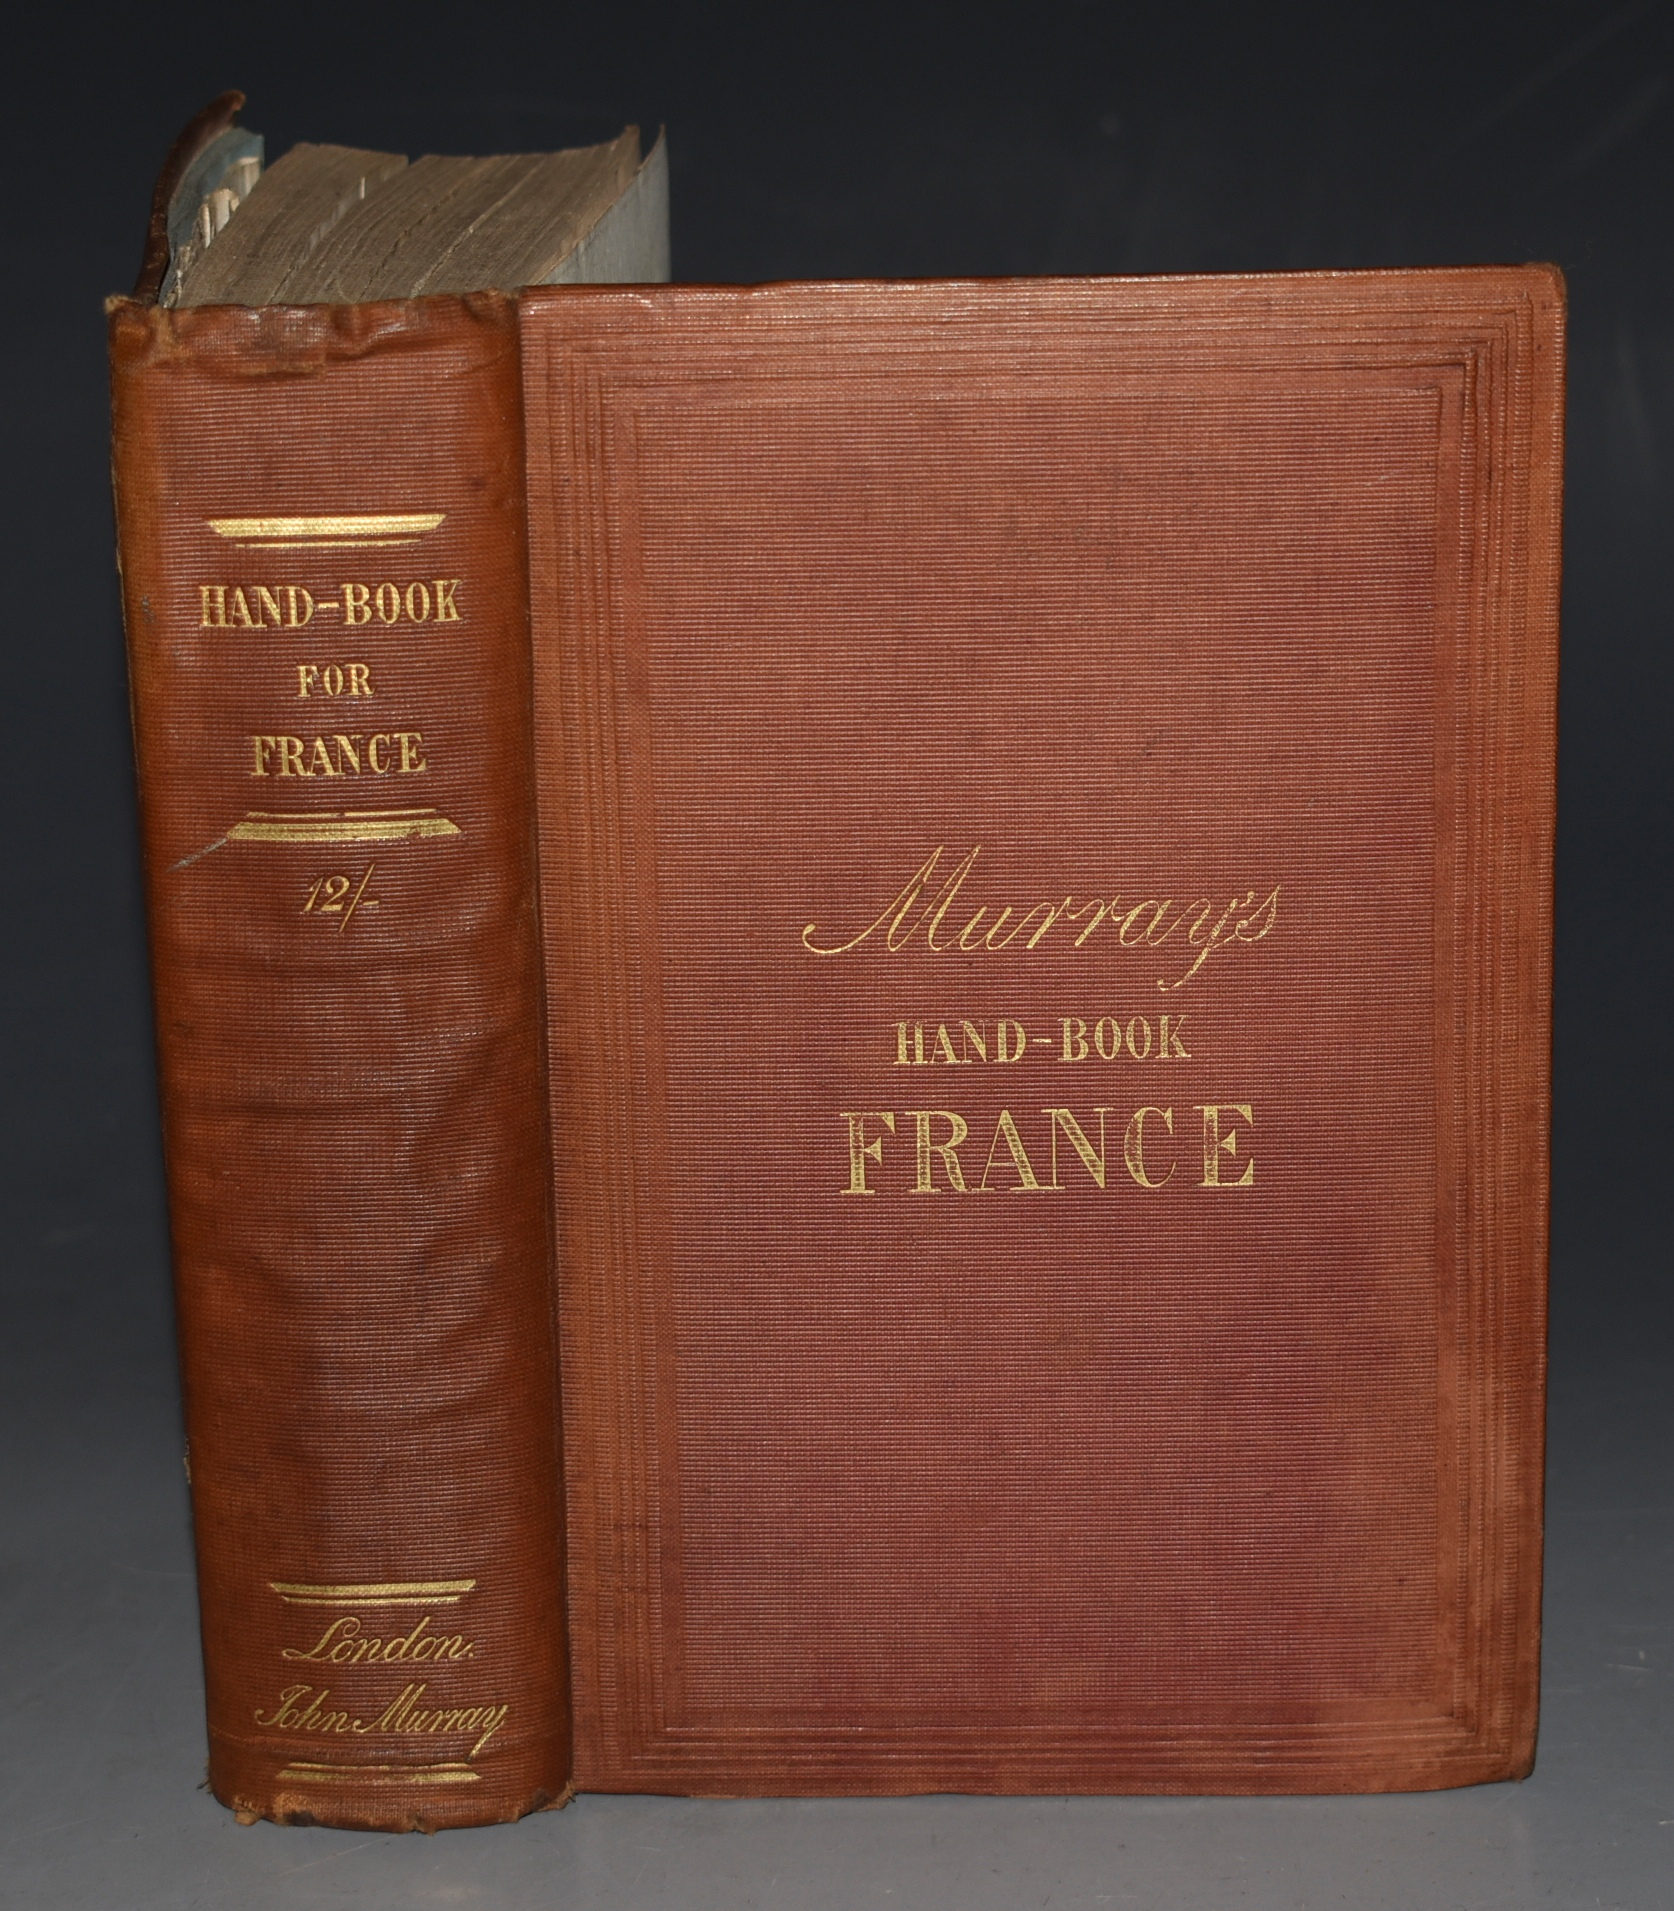 Image for Handbook for Travellers in France: Being a guide to Normandy, Brittany; The Rivers Loire, Seine, Rhone, and Garonne; The French Alps, Dauphine, Provence, and The Pyrenees: With description of the Principal Routes, railwas, the approaches to italy, the chief watering places etc. With Five Travelling Maps.